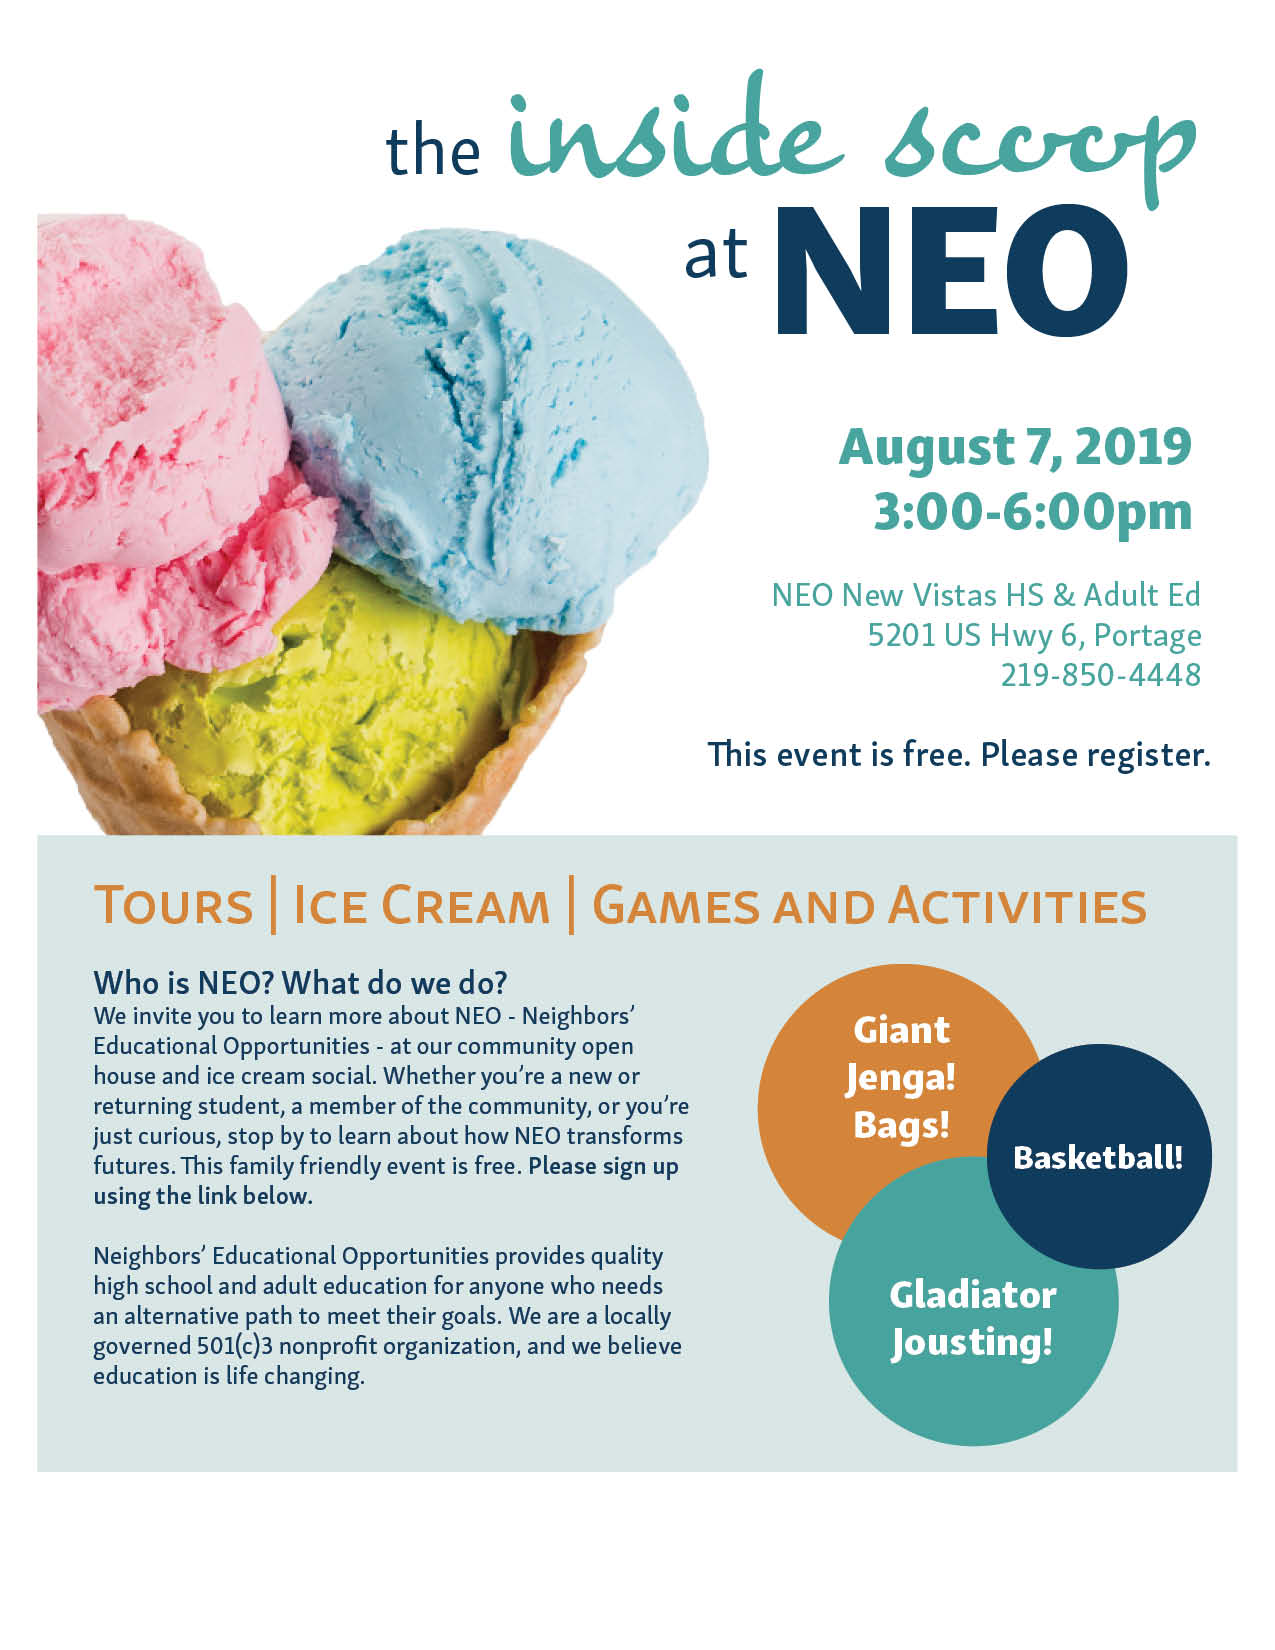 Get the inside scoop of Neighbors' Educational Opportunities at their open house and ice cream social